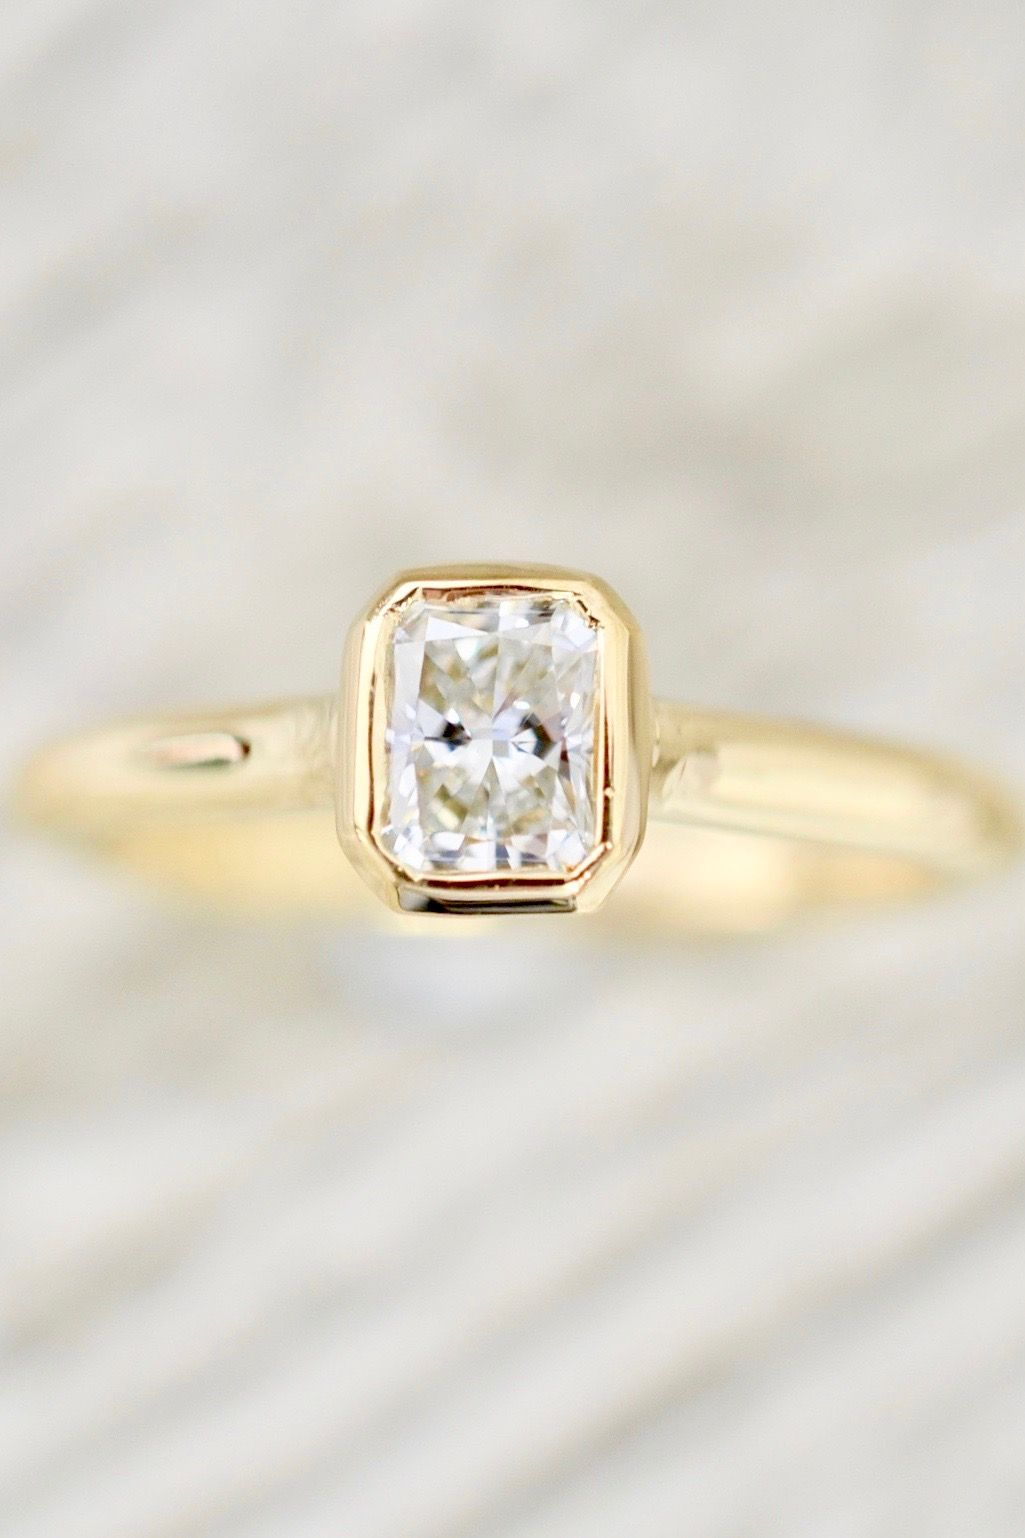 Radiant cut diamond in a bezel set open gallery solitaire engagement